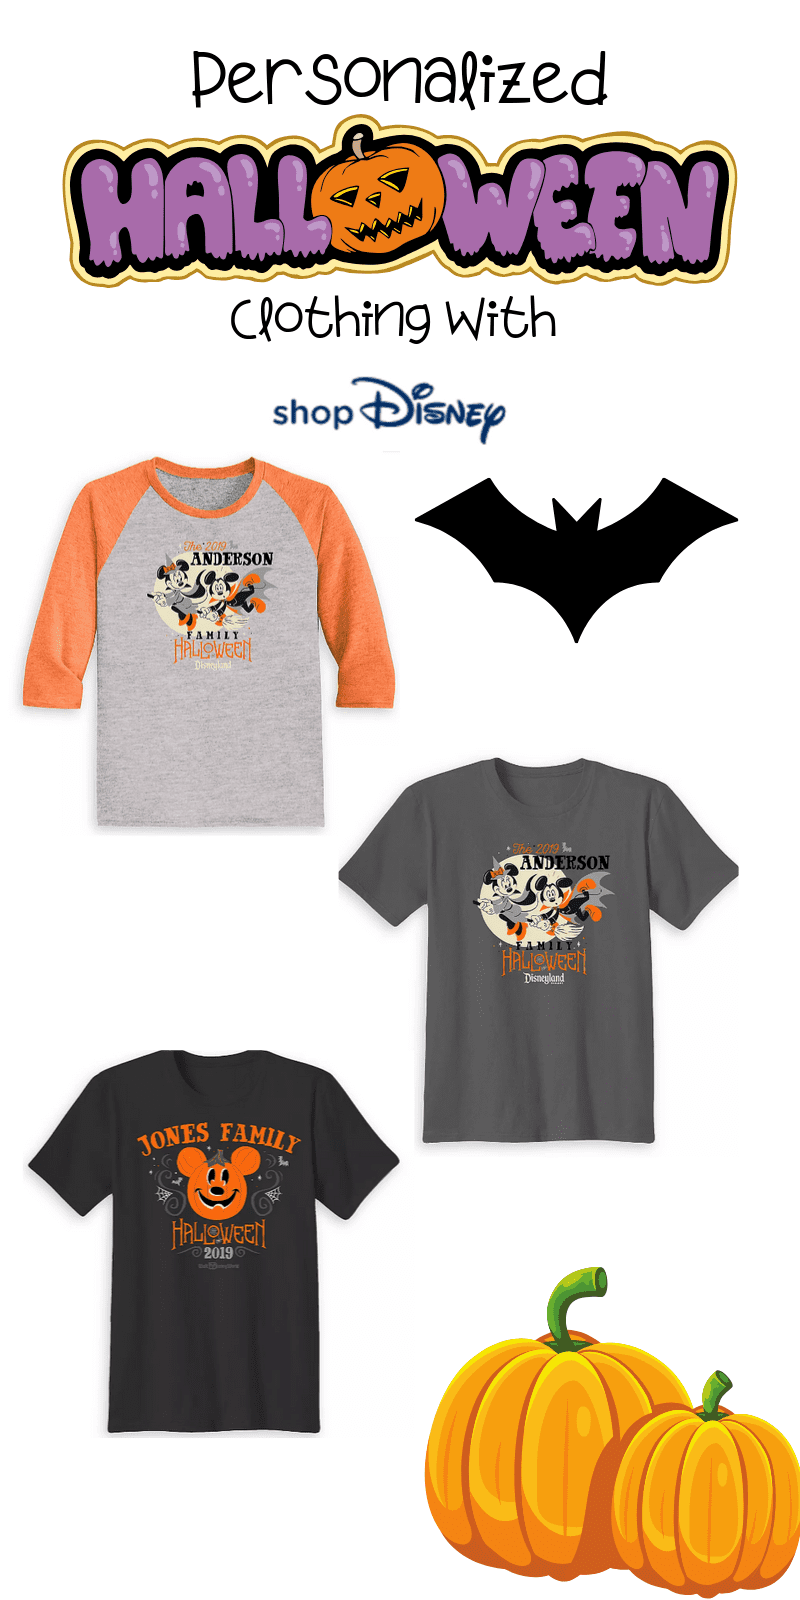 Here are the best in Disney Halloween Personalized Clothing for the whole family. This fantastic post rounds up the spooky and adorableness of ShopDisney's Halloween Collection for 2019.  #ad @ShopDisney #halloween2019 #disney #disneylove #disneymagic #waltdisney #disneyprincess #mickeymouse #disneyphoto #disneylife #disneyfan #mickey #disneyaddict #disnerd #starwars #halloween